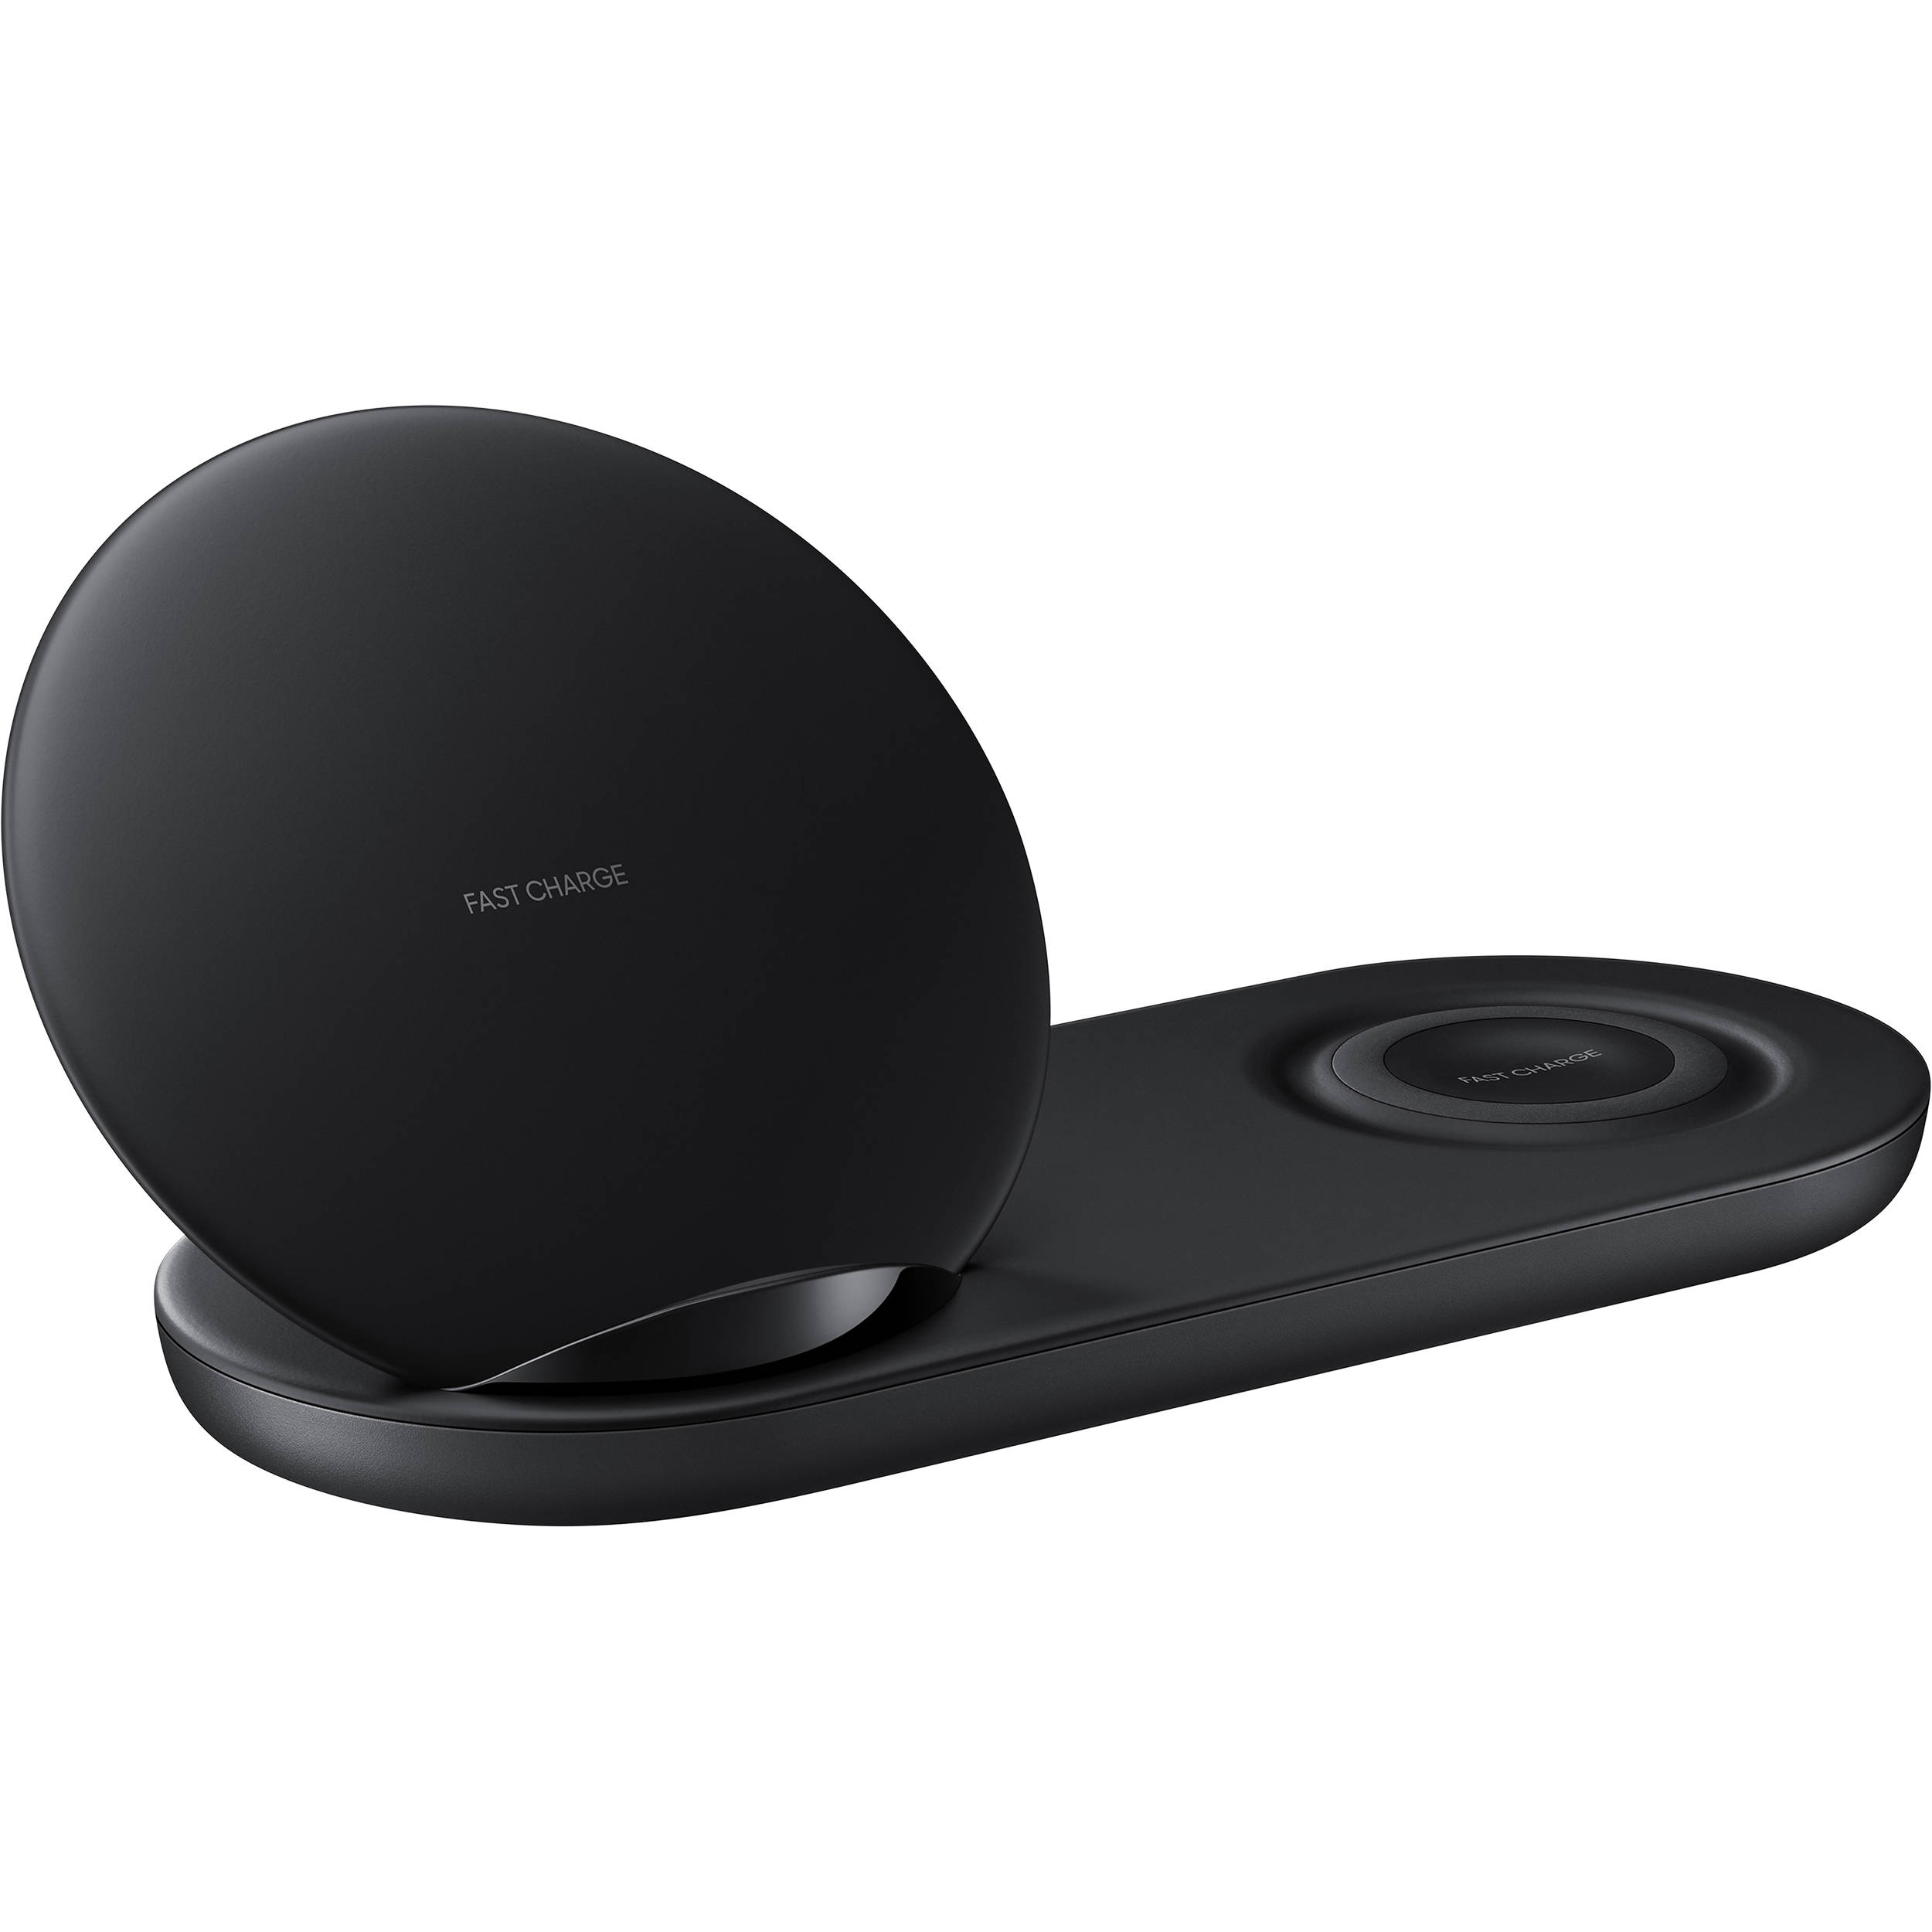 samsung qi wireless charger duo black ep n6100tbegus b h photo. Black Bedroom Furniture Sets. Home Design Ideas